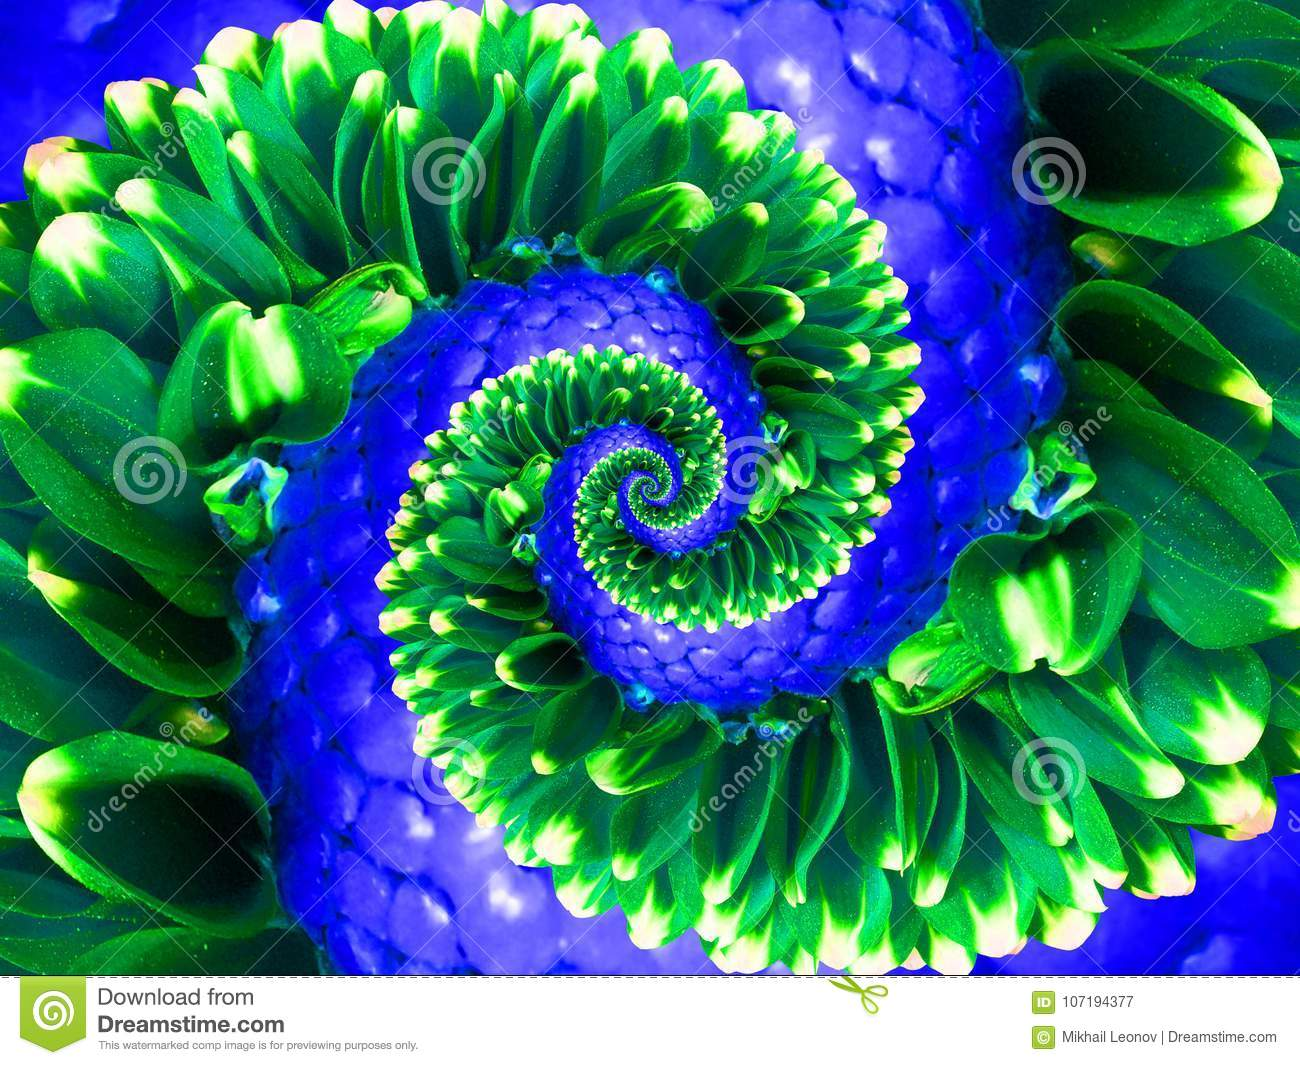 Green navy flower spiral abstract fractal effect pattern background. Floral spiral abstract pattern fractal. Surreal green blue